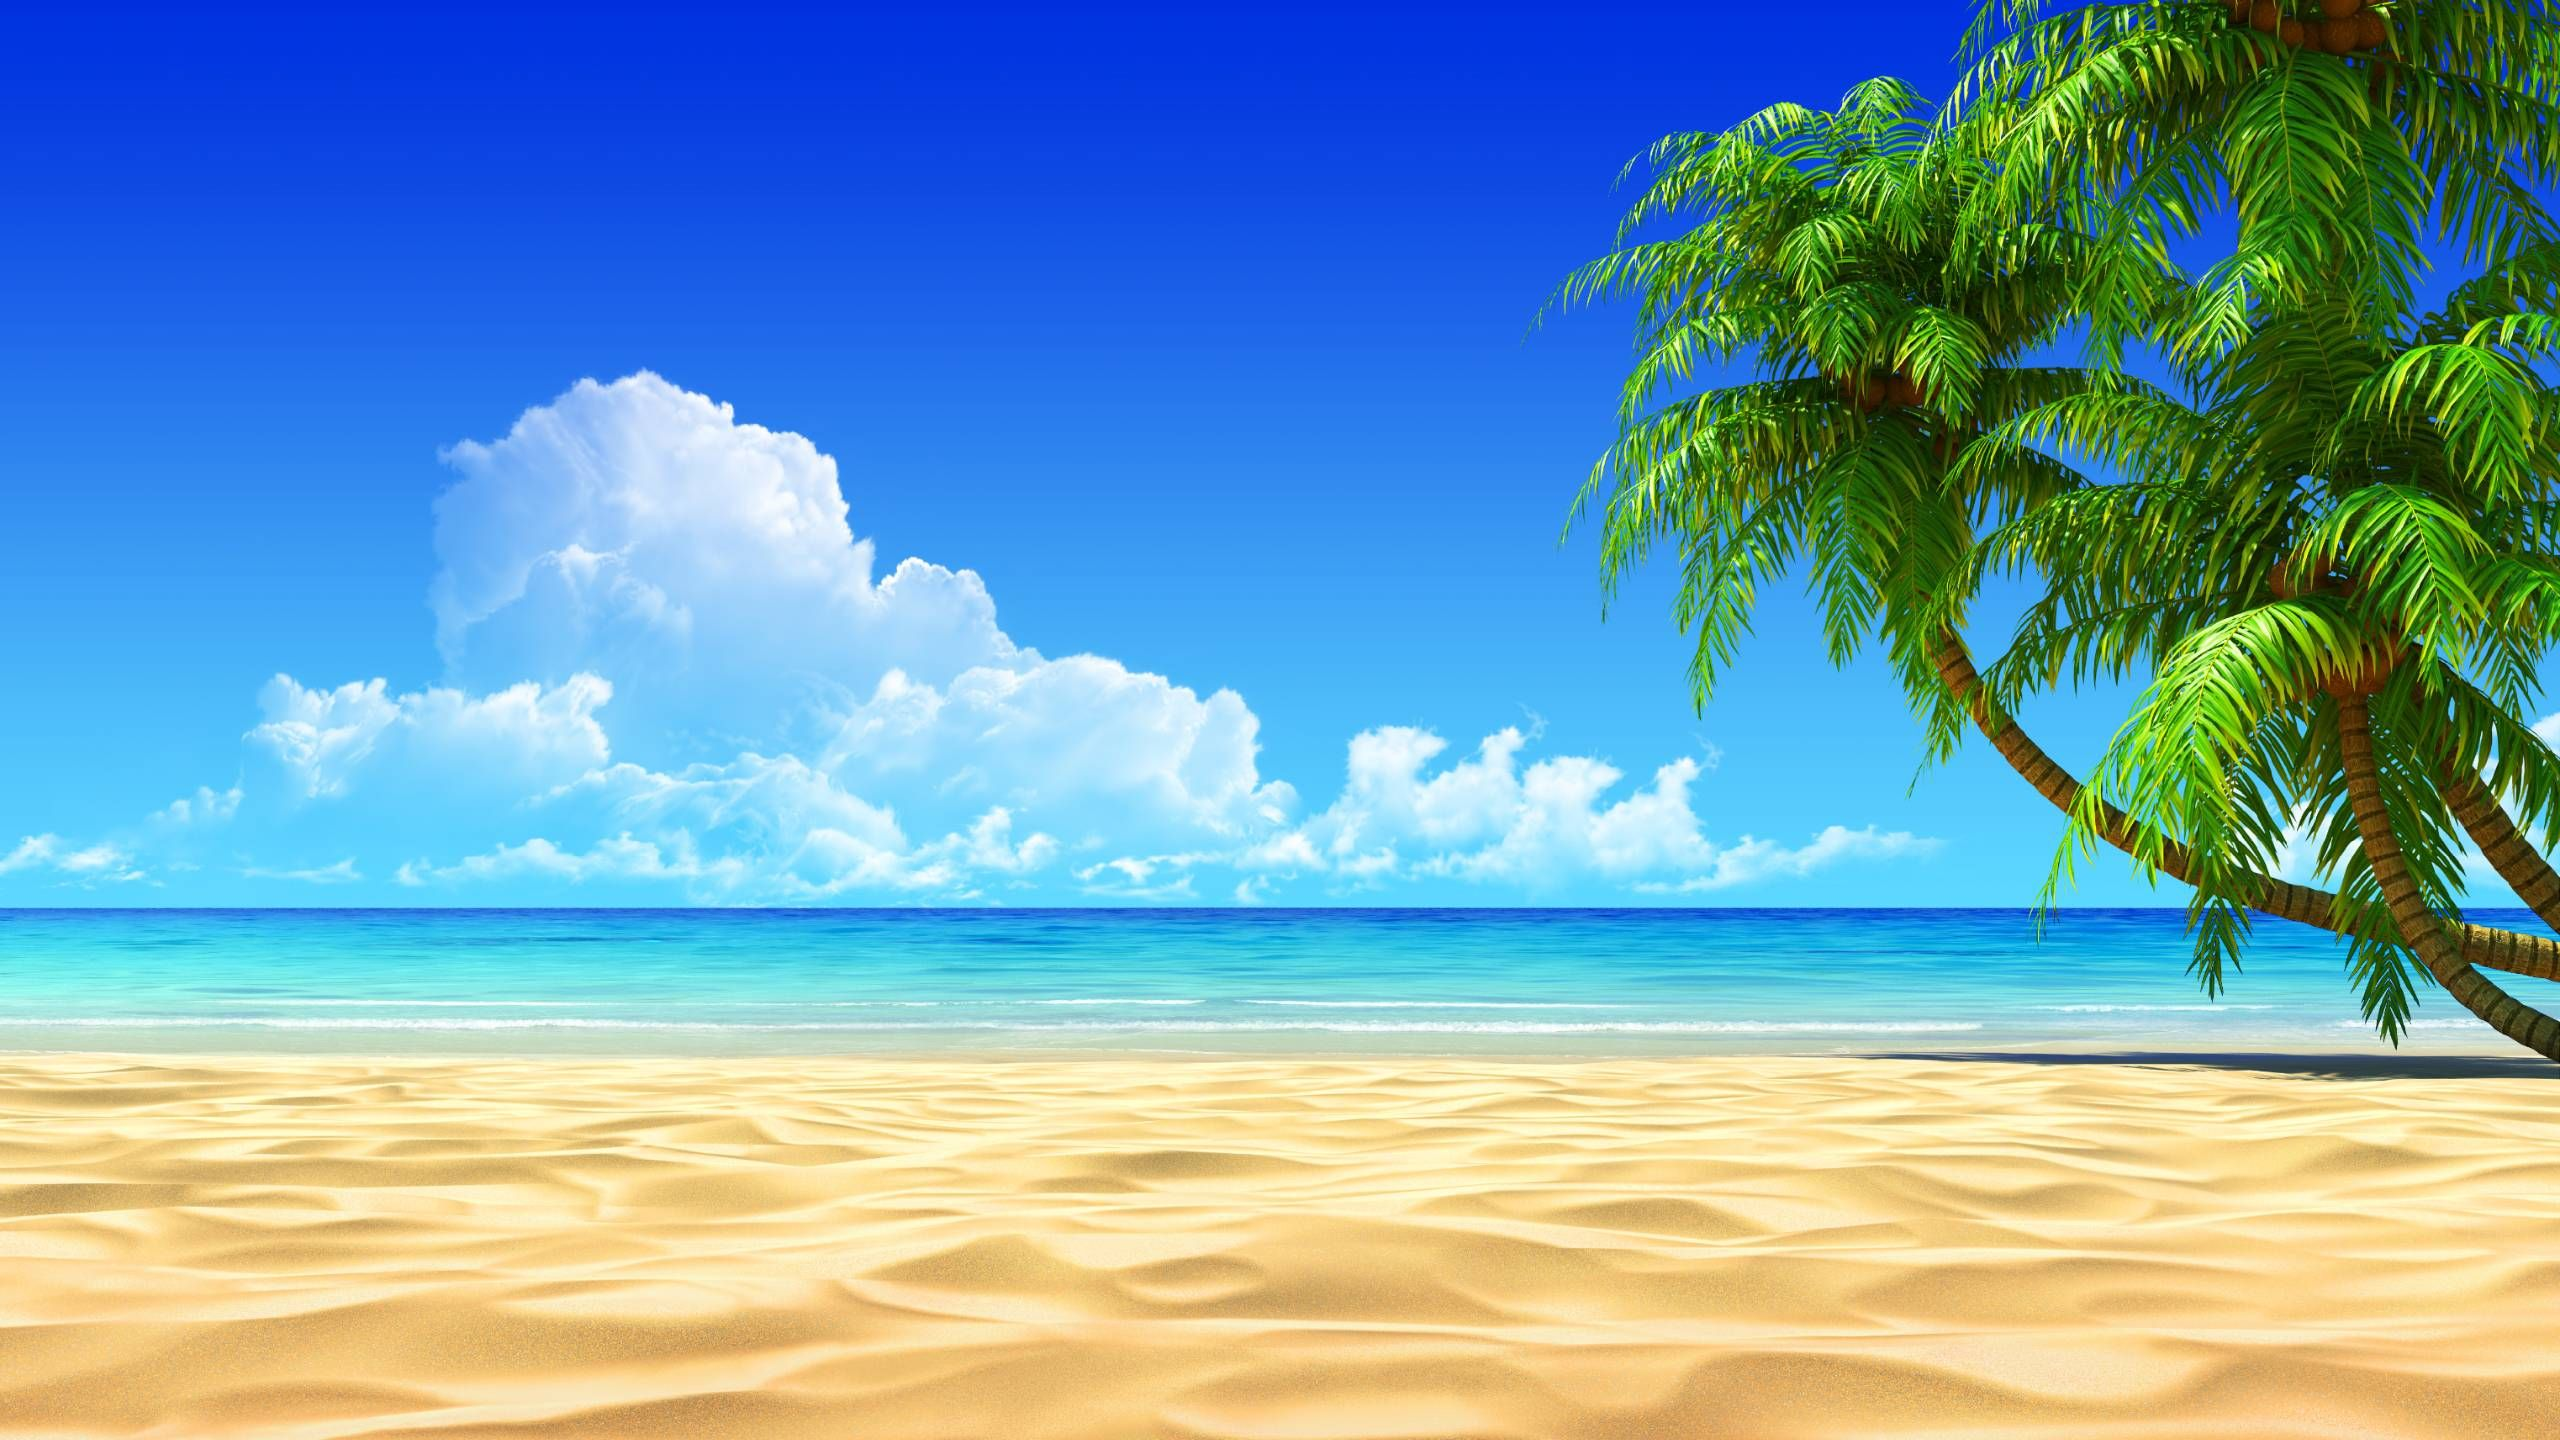 40 Beautiful Beach Wallpapers For Your Desktop Summer Beach Wallpaper Beach Wallpaper Summer Wallpaper